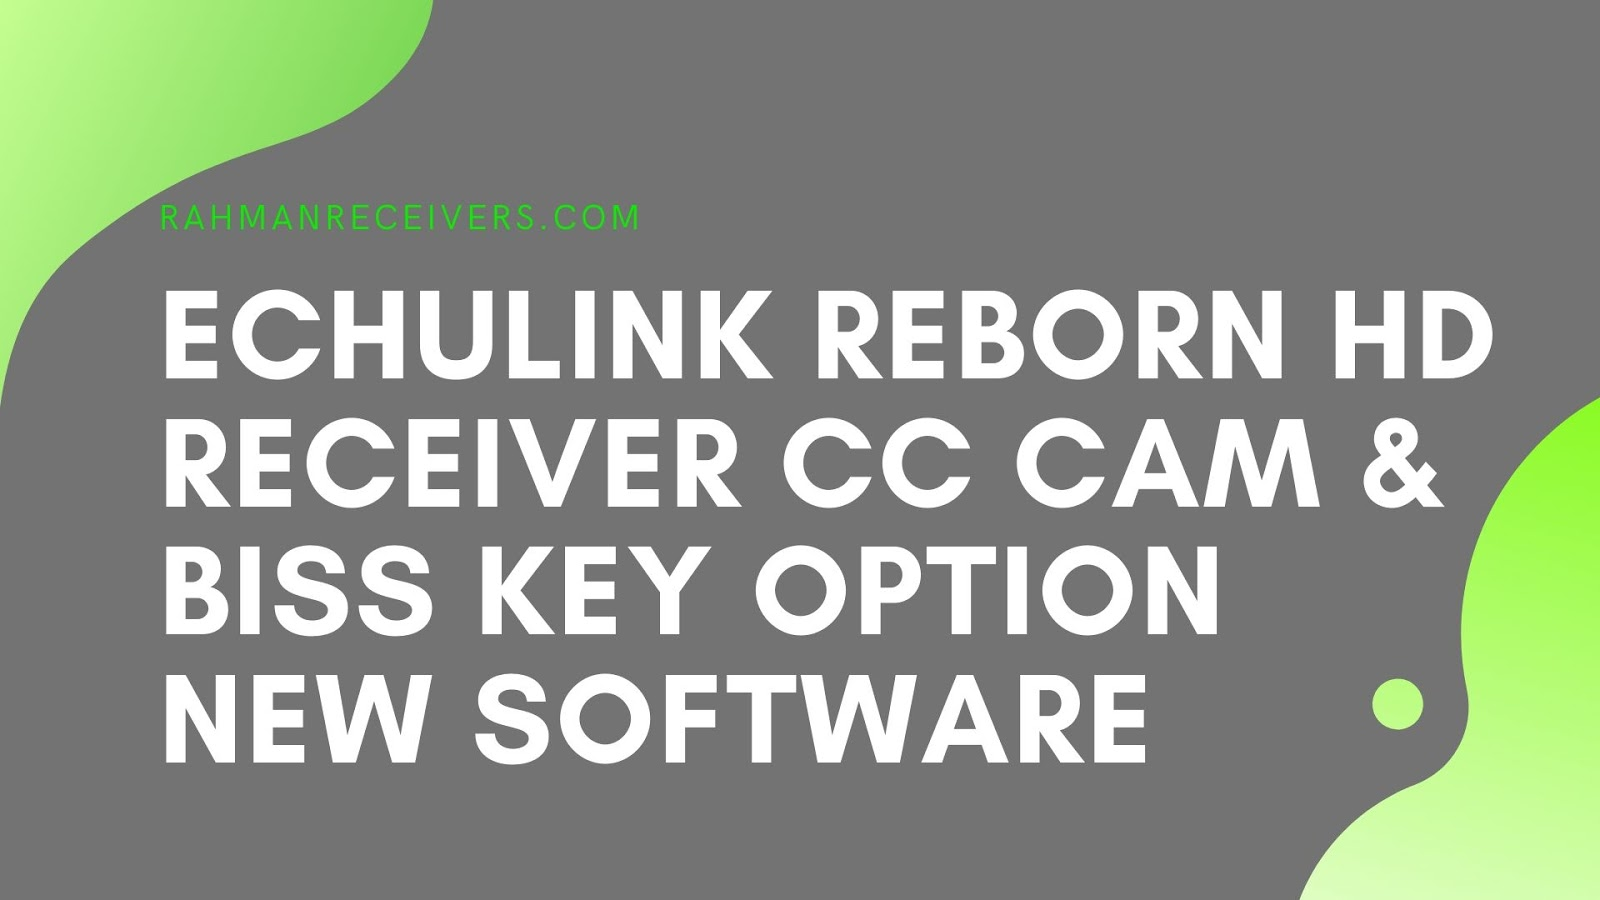 ECHULINK REBORN HD RECEIVER CC CAM & BISS KEY OPTION NEW SOFTWARE 18 OCTOBER 2019